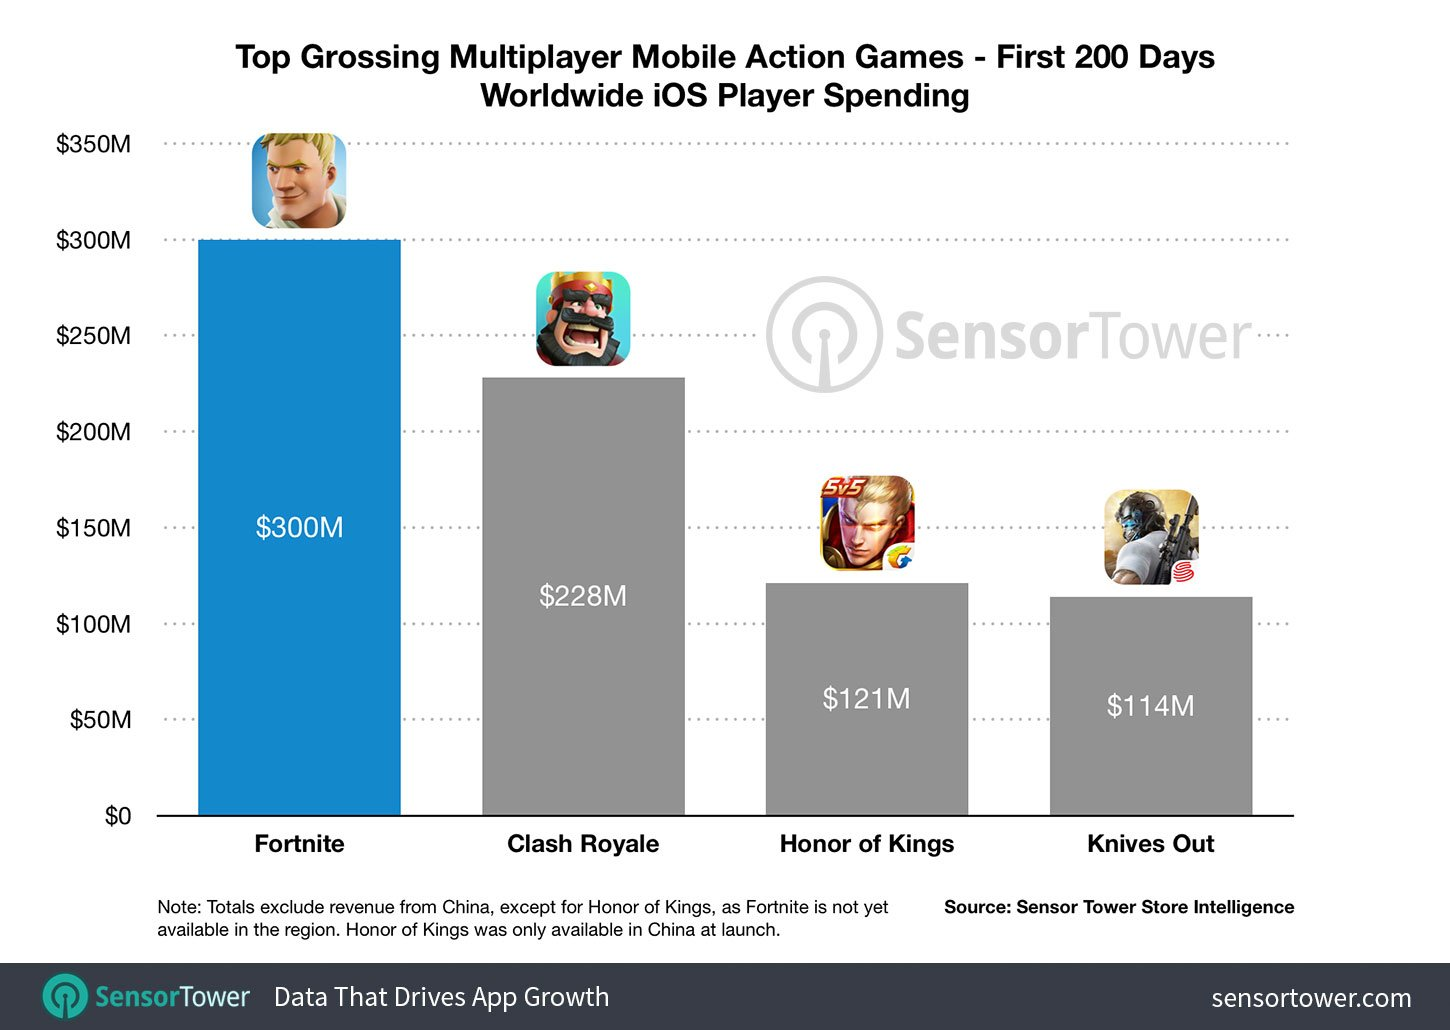 fortnite first 200 days compared - Fortnite sur iOS a déjà généré 300 millions de dollars de revenus